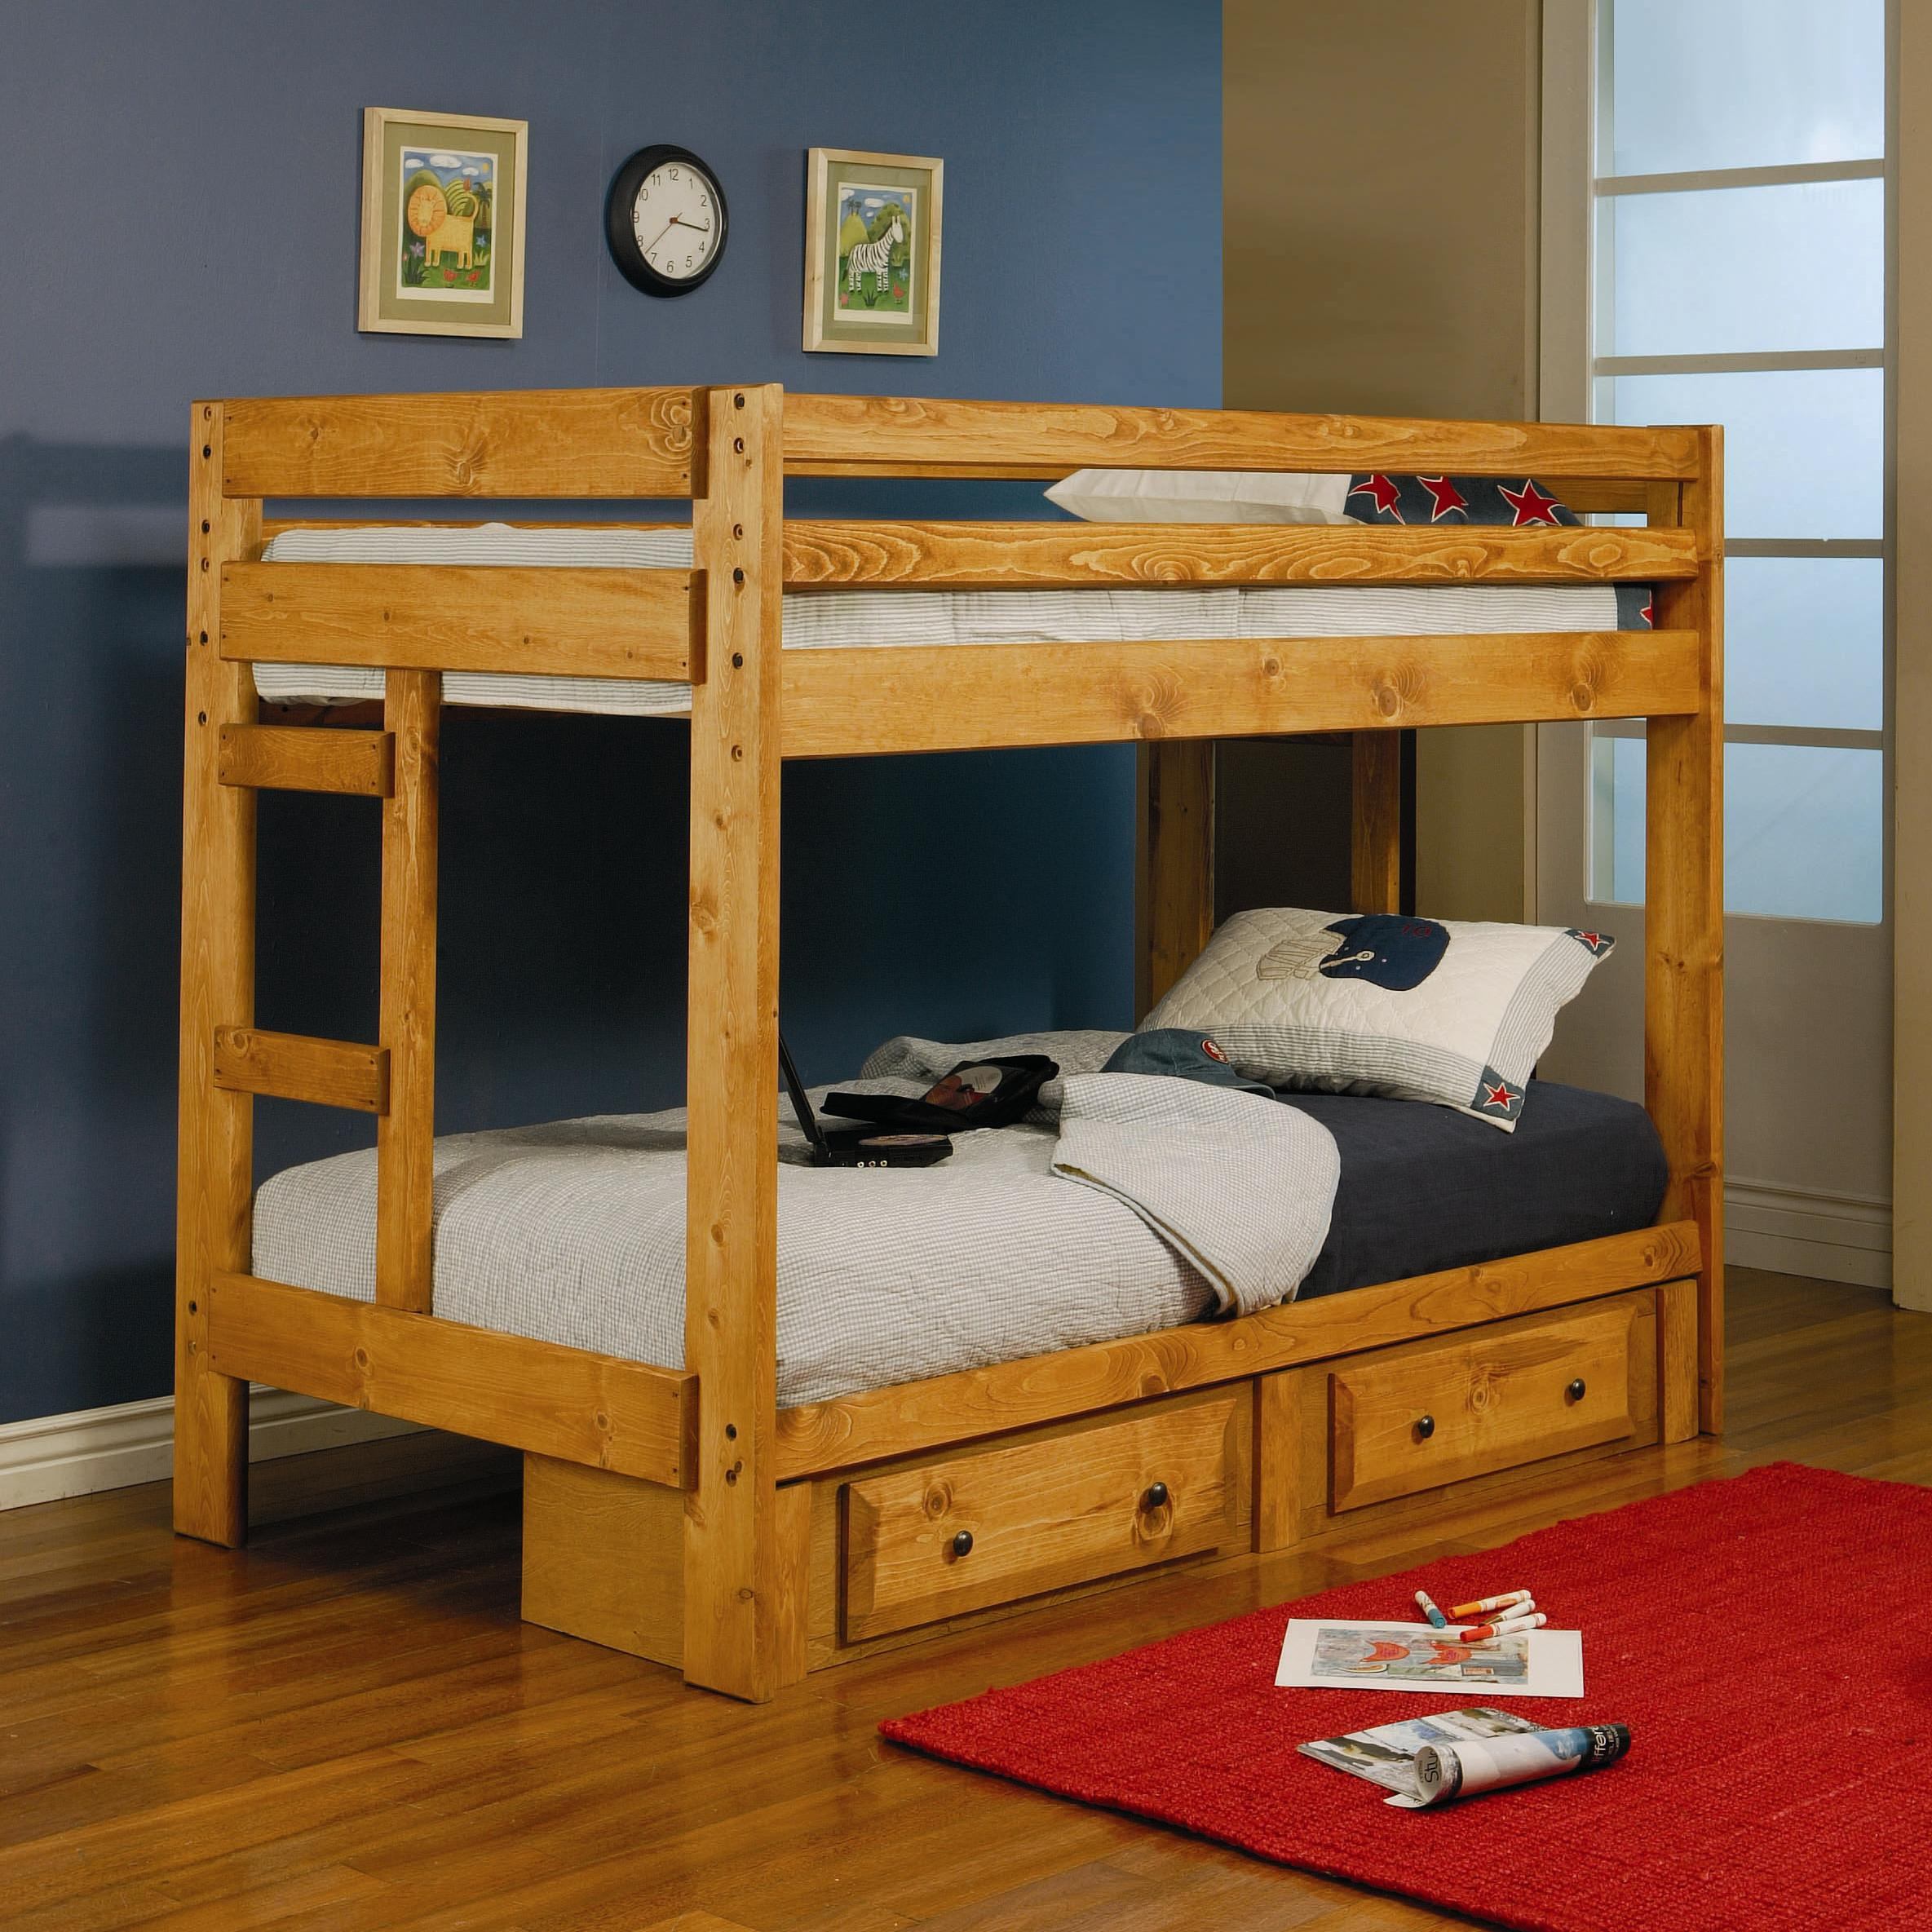 competitive price 536a7 5a693 Wrangle Hill Twin Over Twin Bunk Bed with Built-In Ladders by Coaster at  Value City Furniture